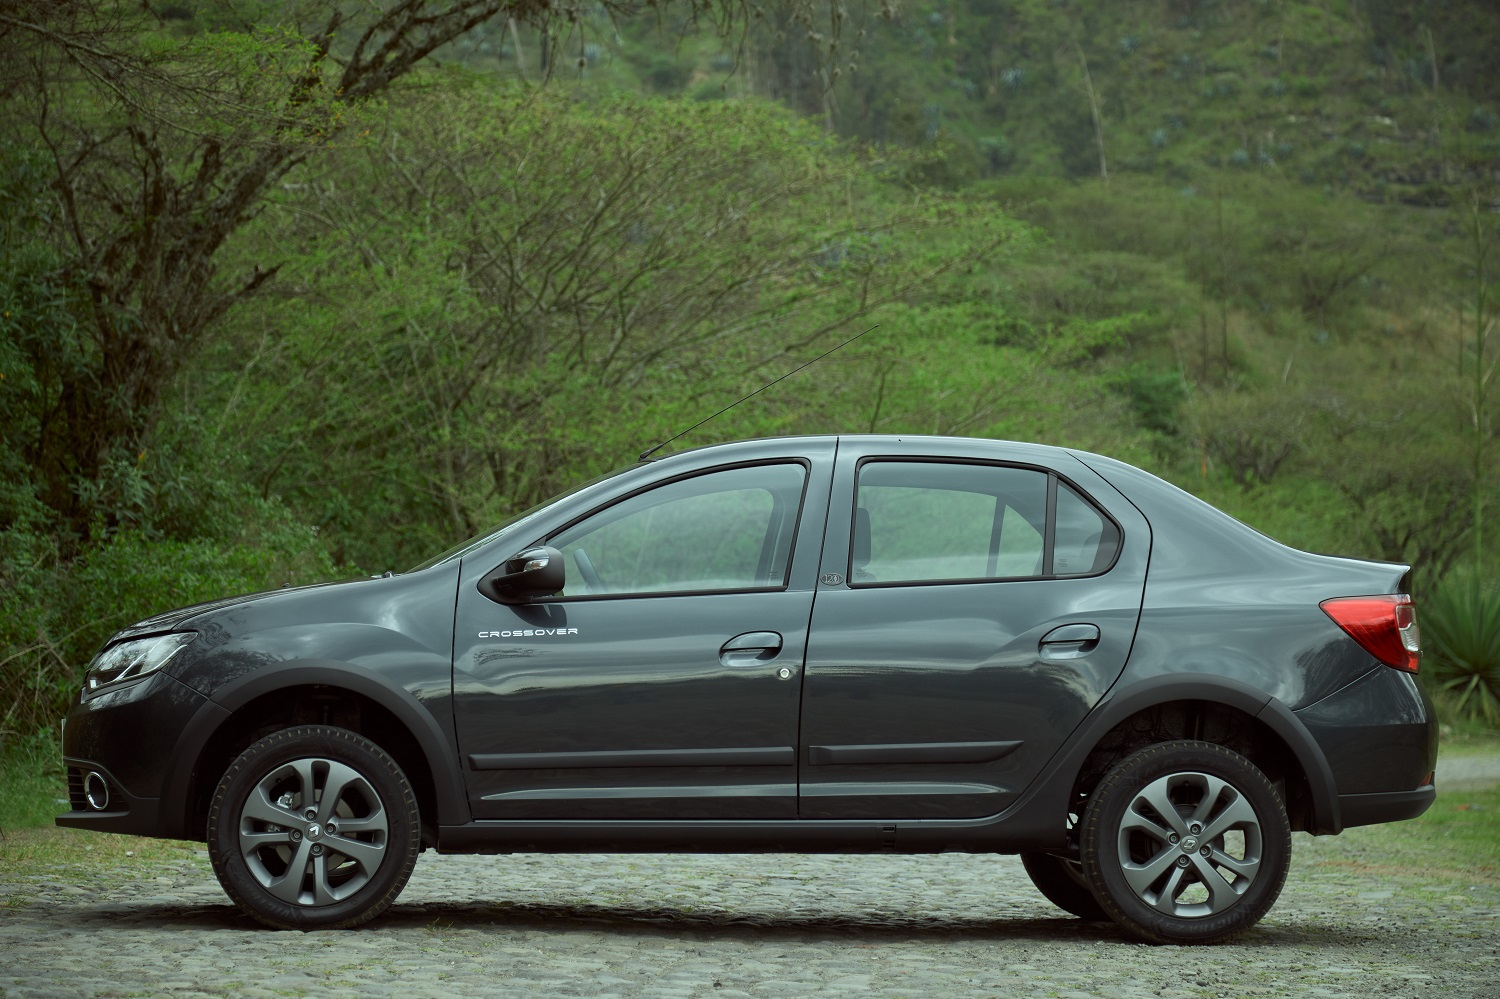 renault-crossover-exterior-1-1